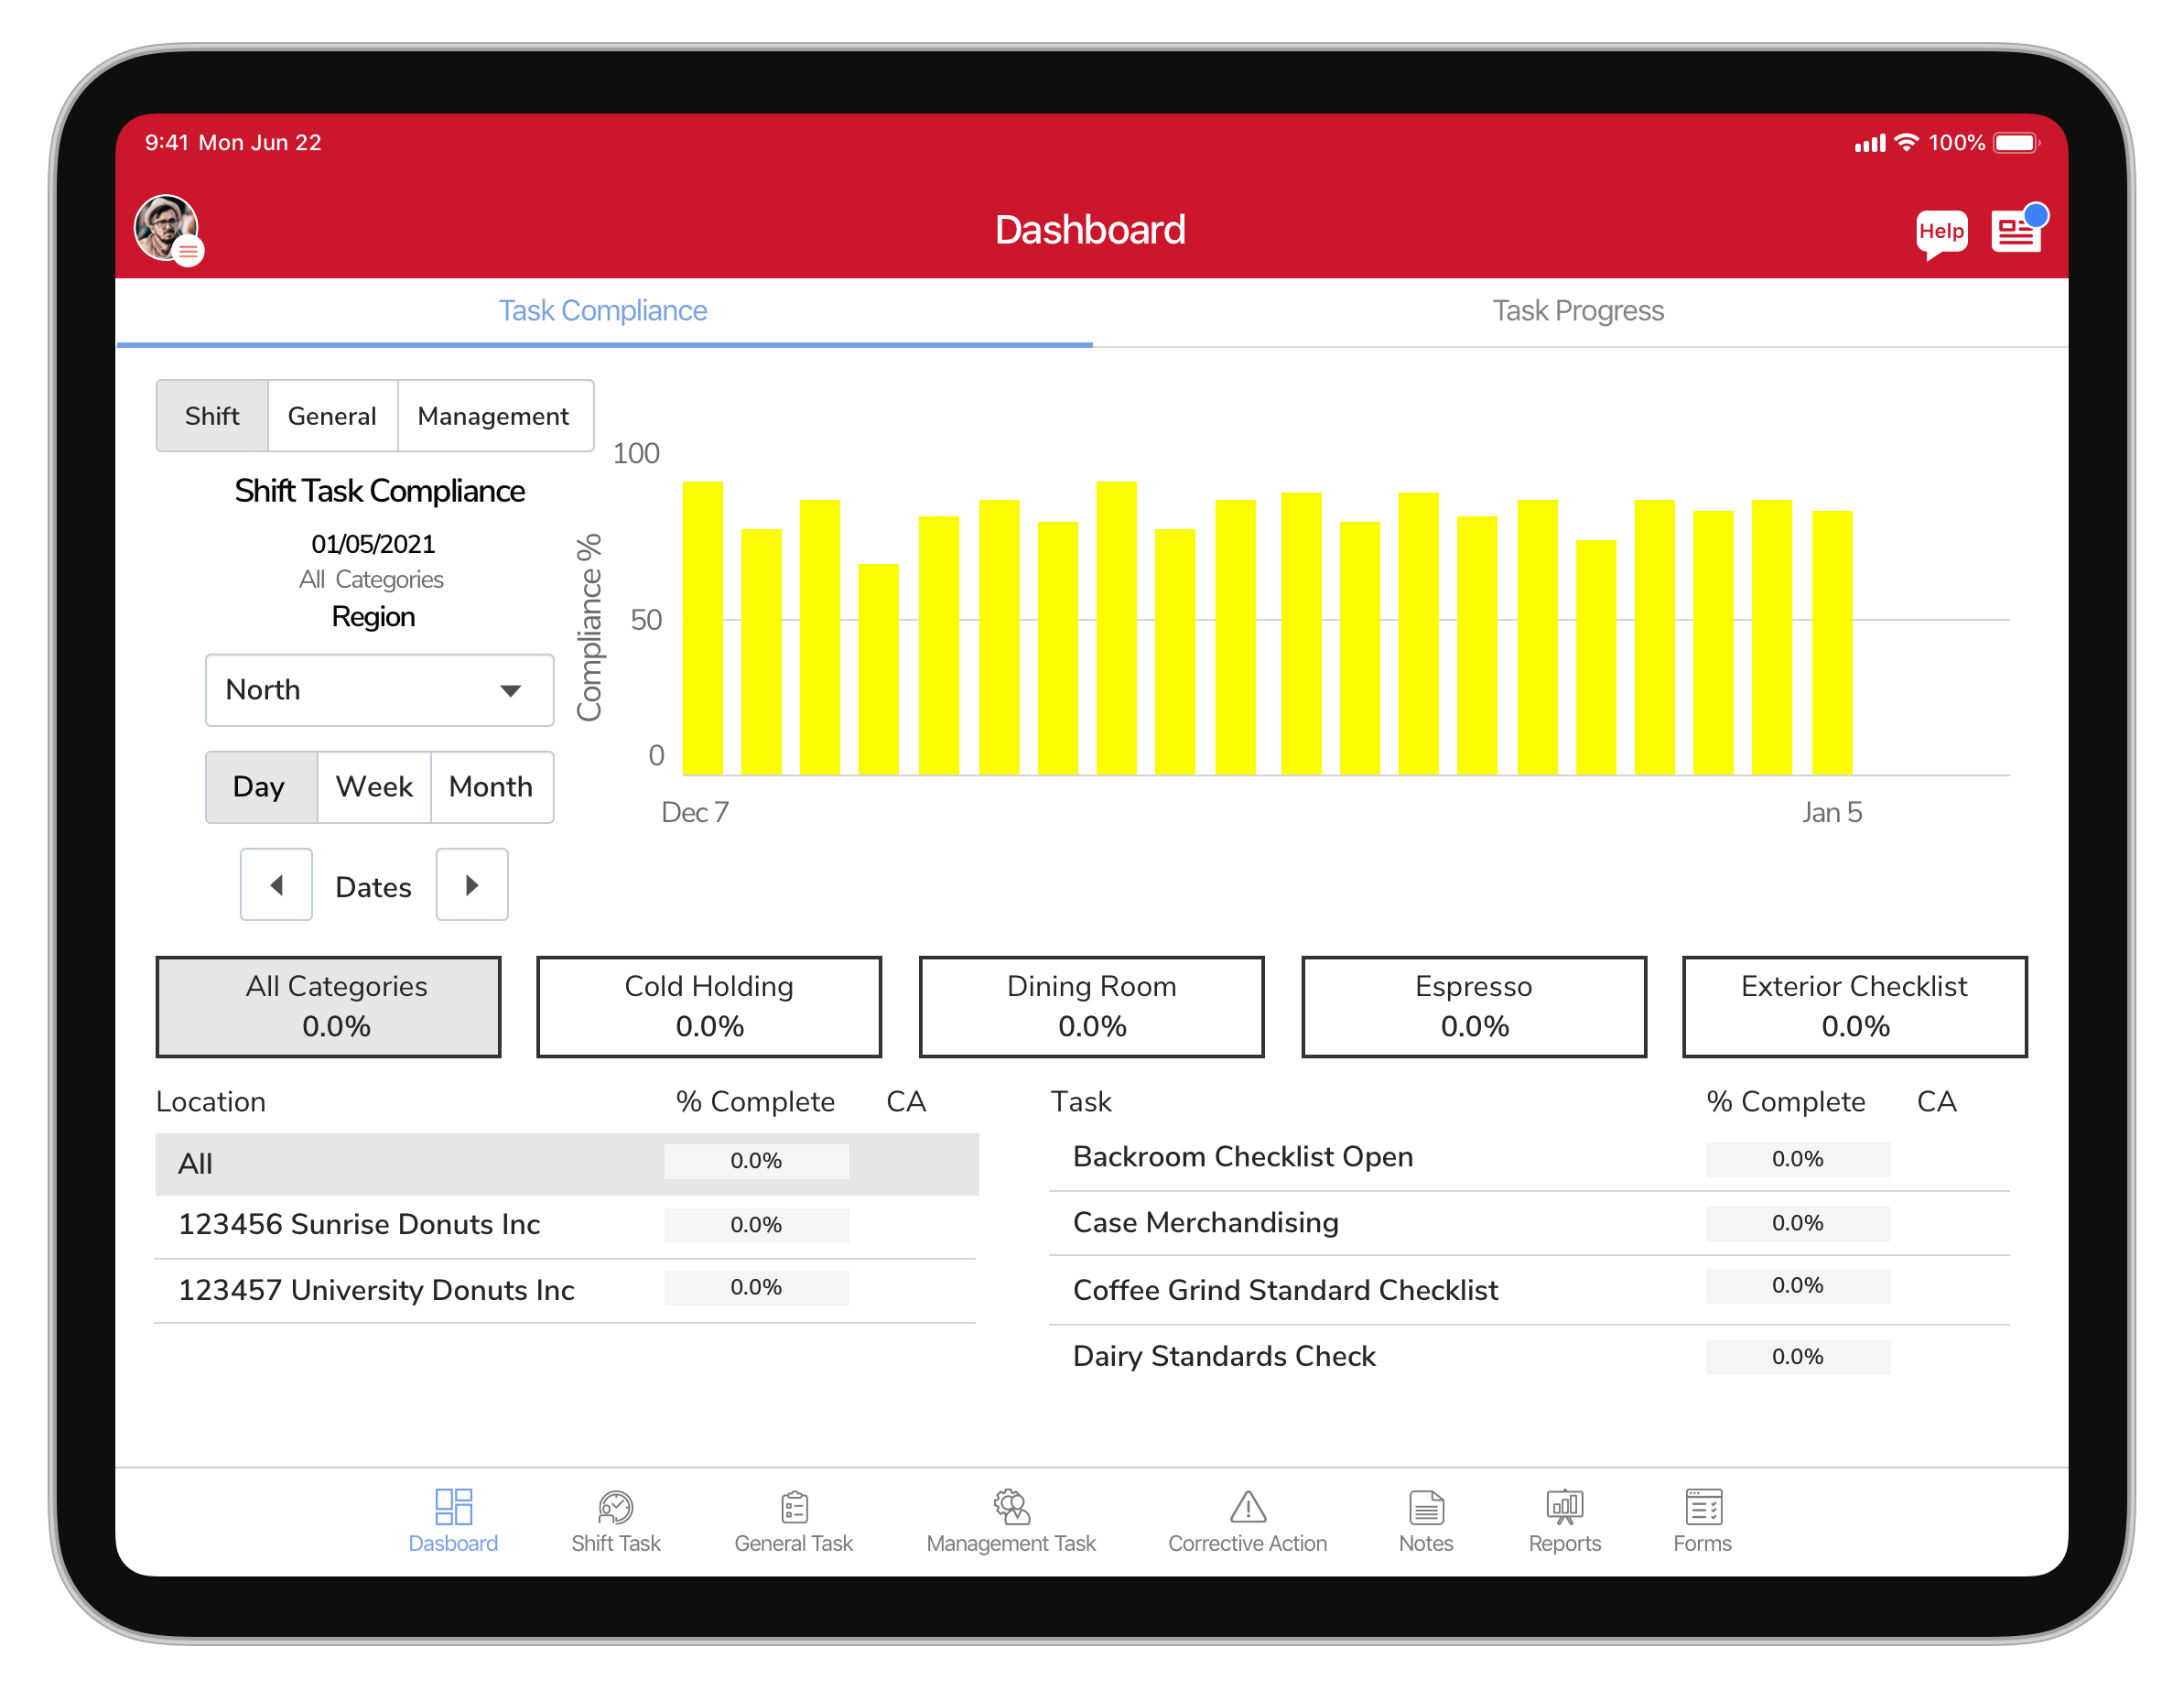 https://www.workpulse.com/wp-content/uploads/2021/07/Dashboard.png